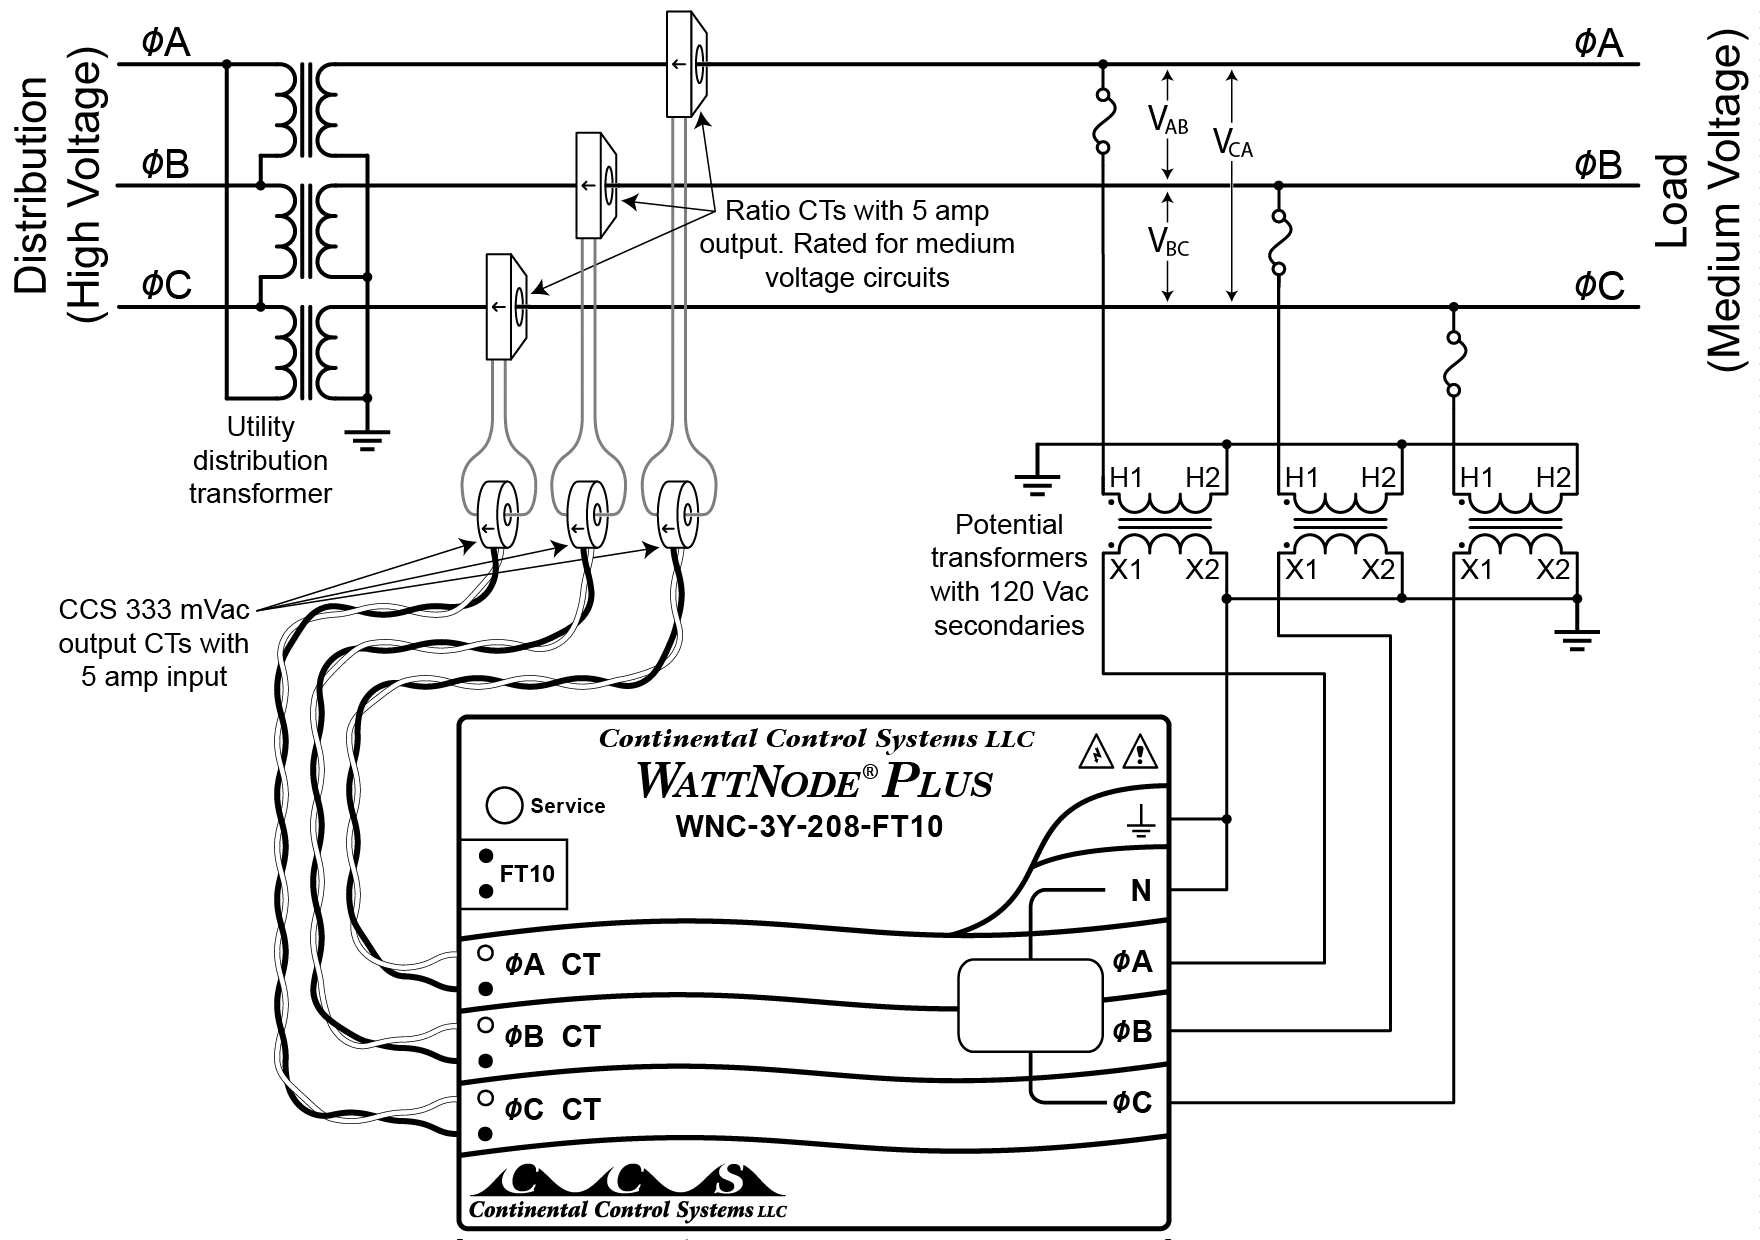 hight resolution of 75 kva transformer wiring diagram free picture electrical square d 480 volt transformer wiring diagram